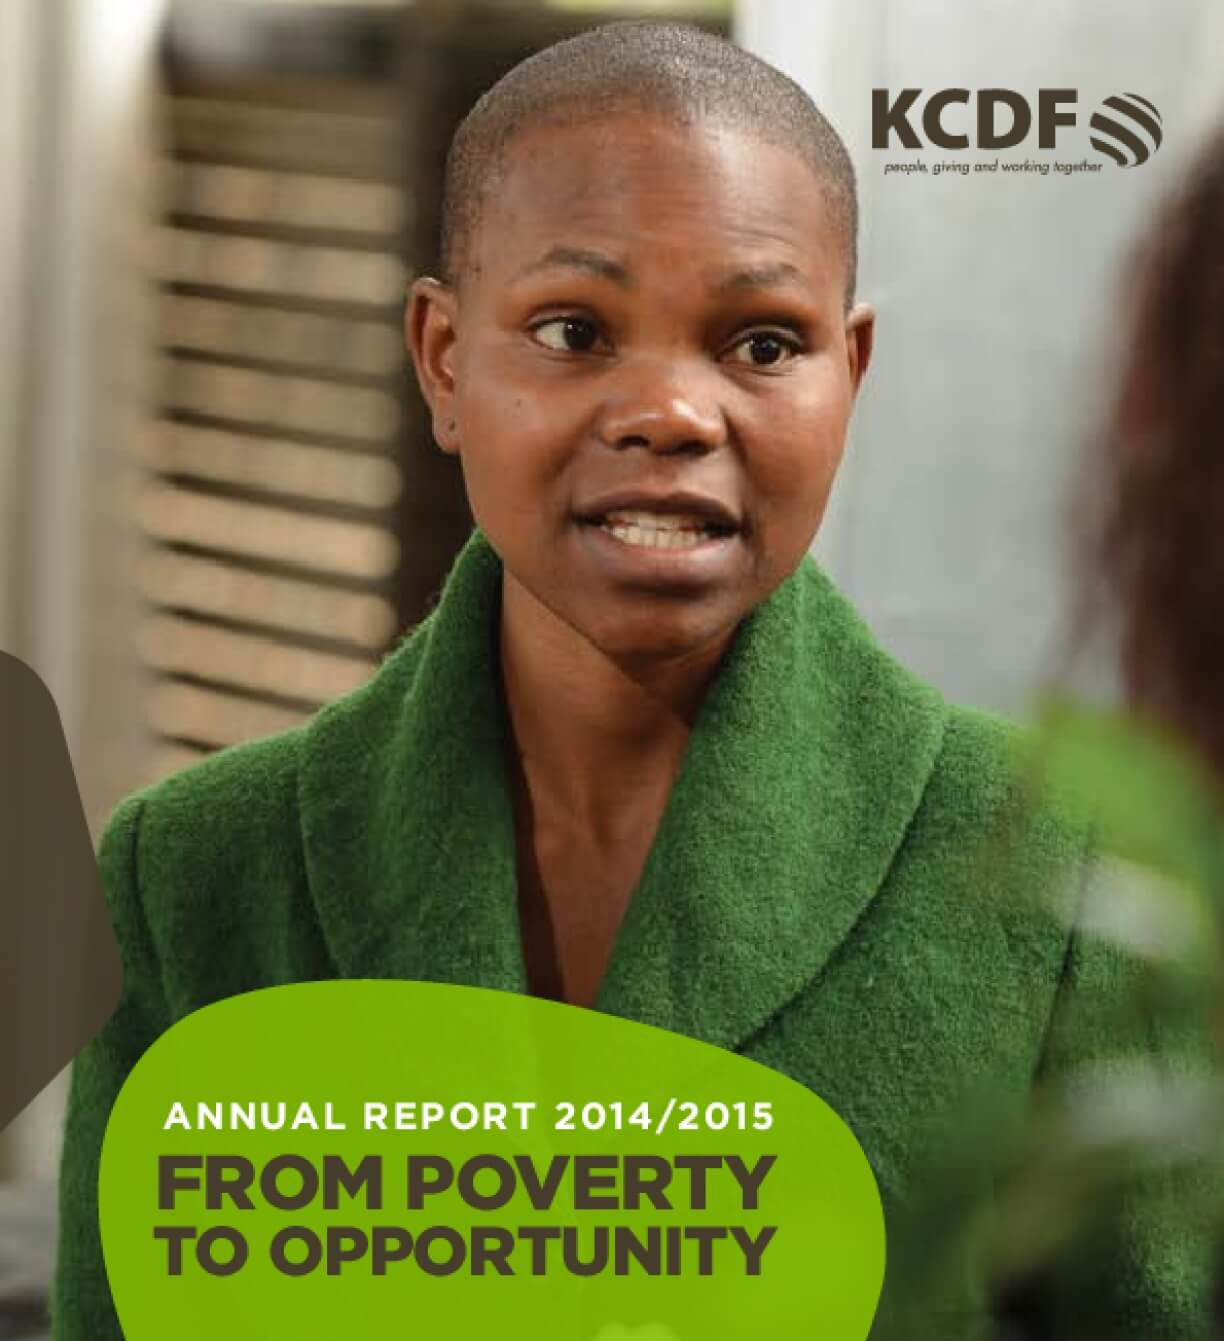 KCDF Annual Report 2014/2015: From Poverty to Opportunity